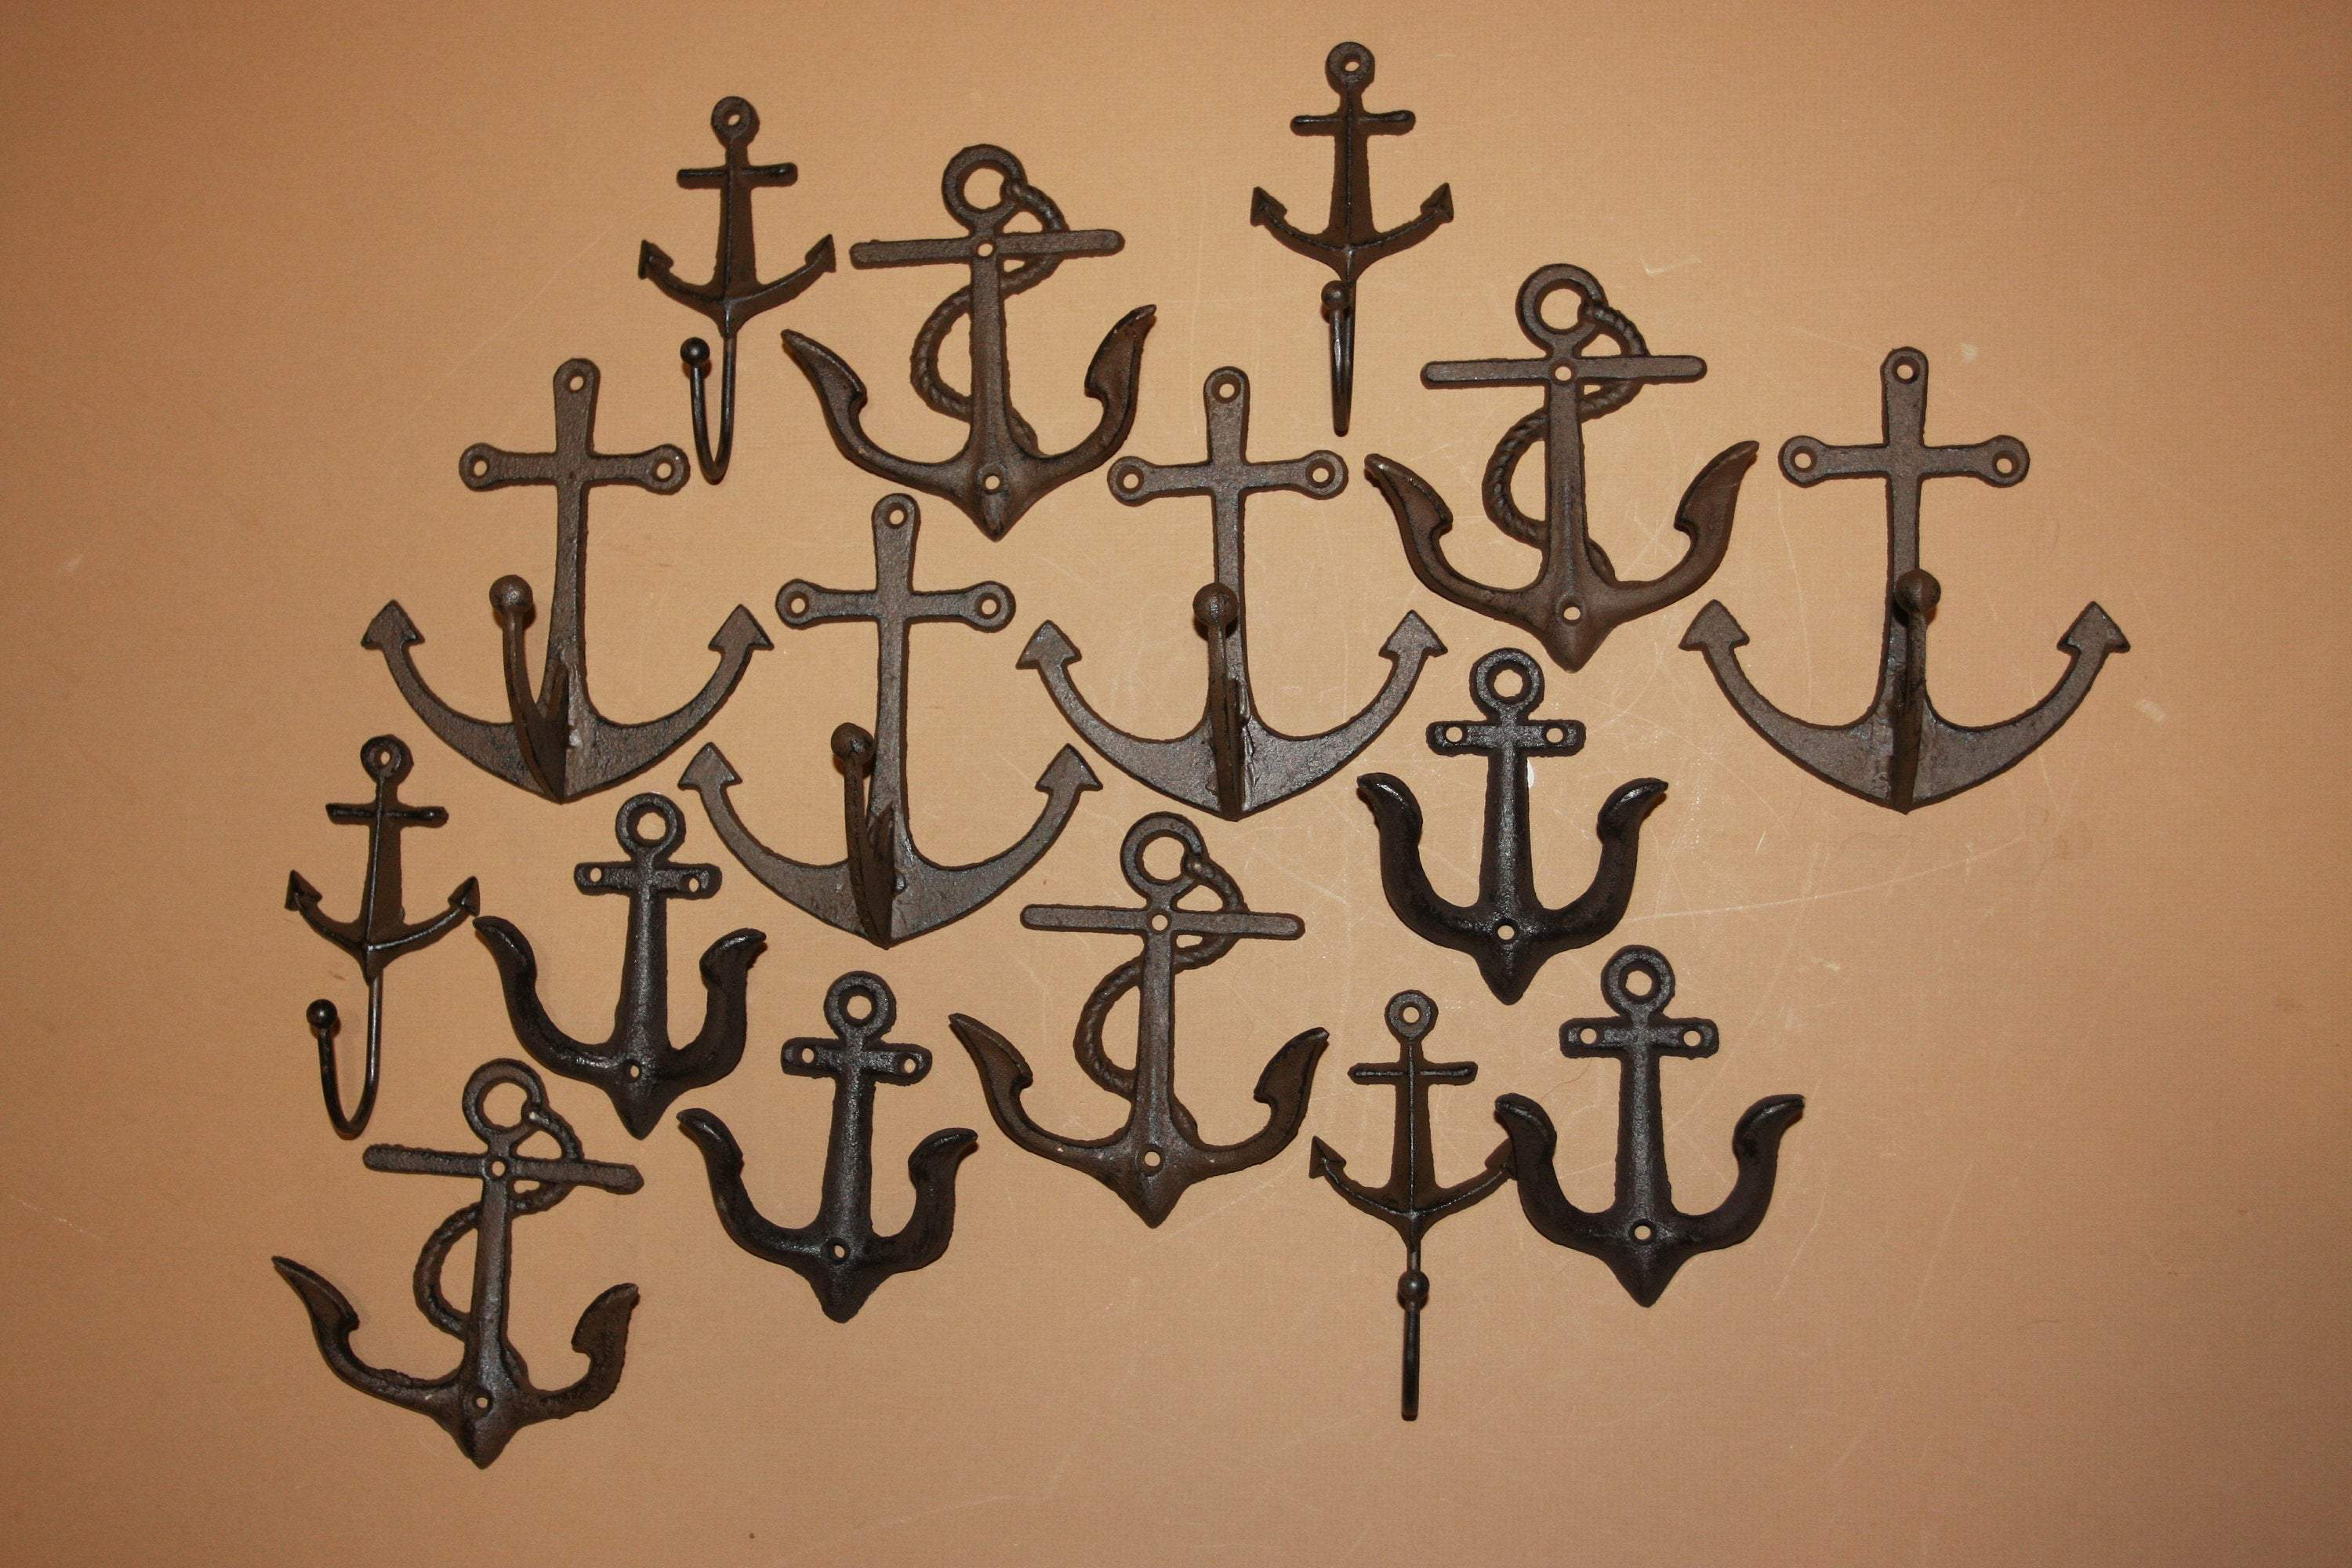 16) Anchor Stocking Stuffers, Cast Iron Wall Hooks, Volume Bulk Priced, Shipping Included